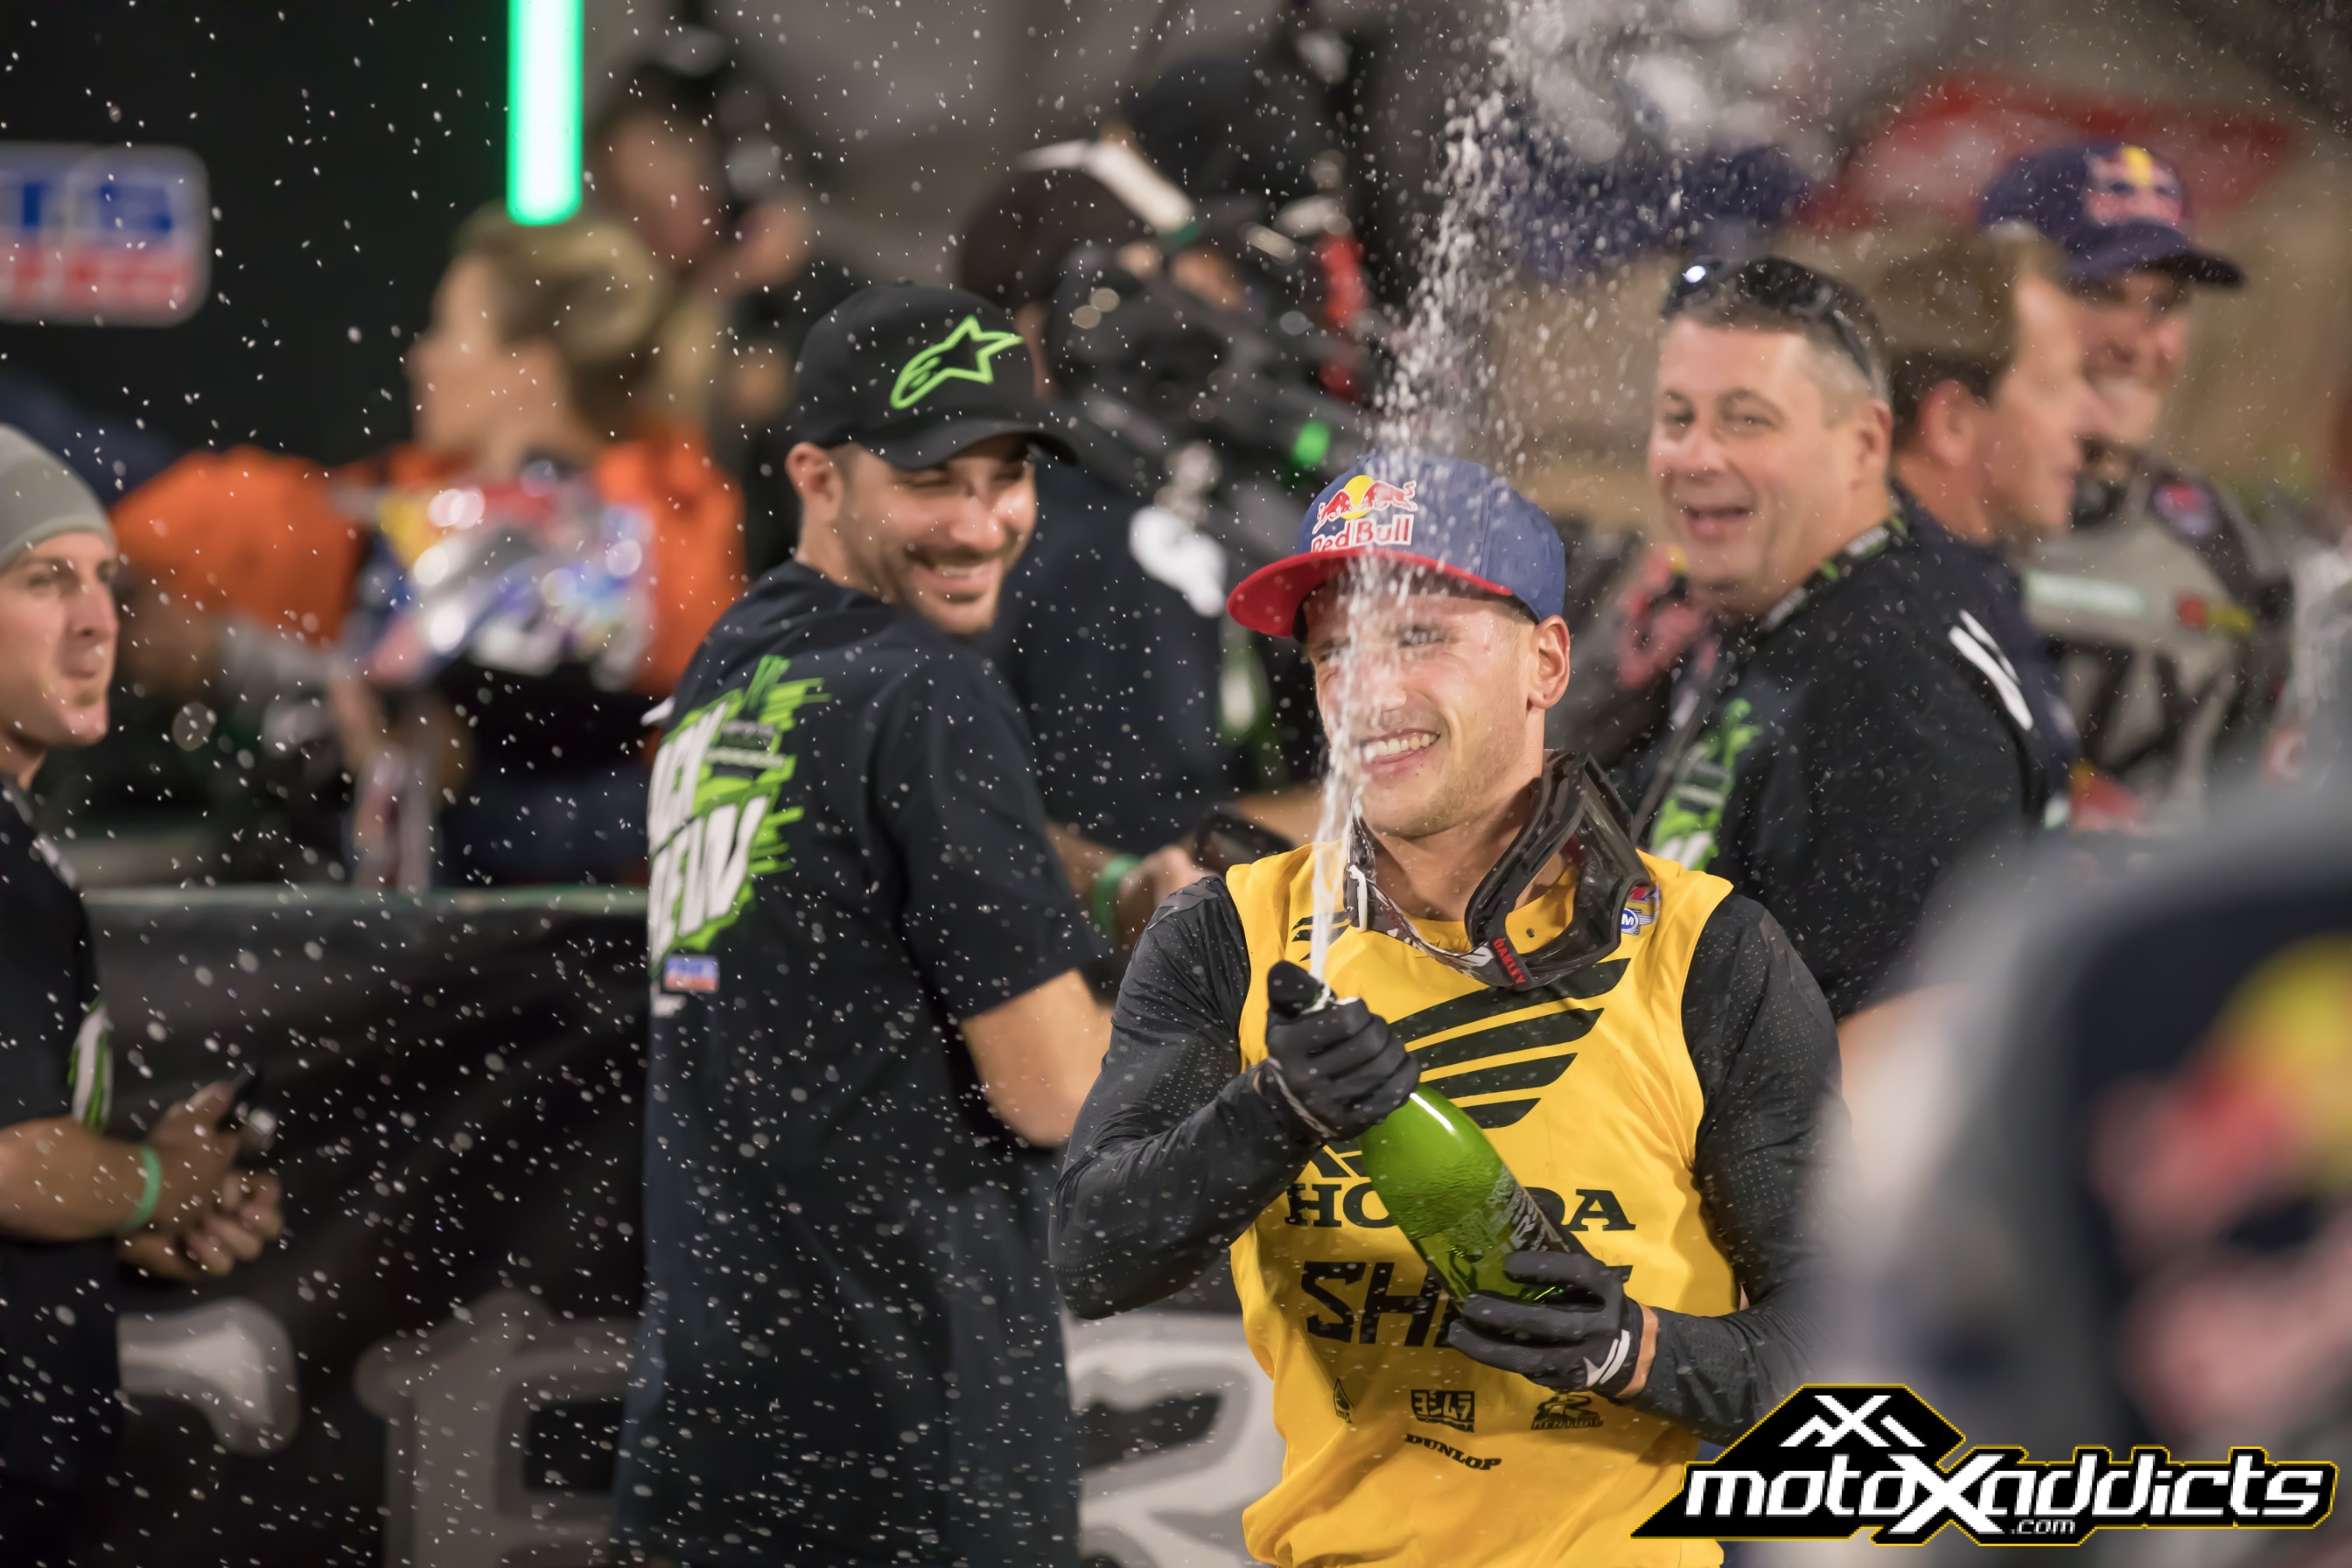 It's been a long offseason, but nobody forgot how to get the cork out of the champagne. Photo by: Chase Yocom